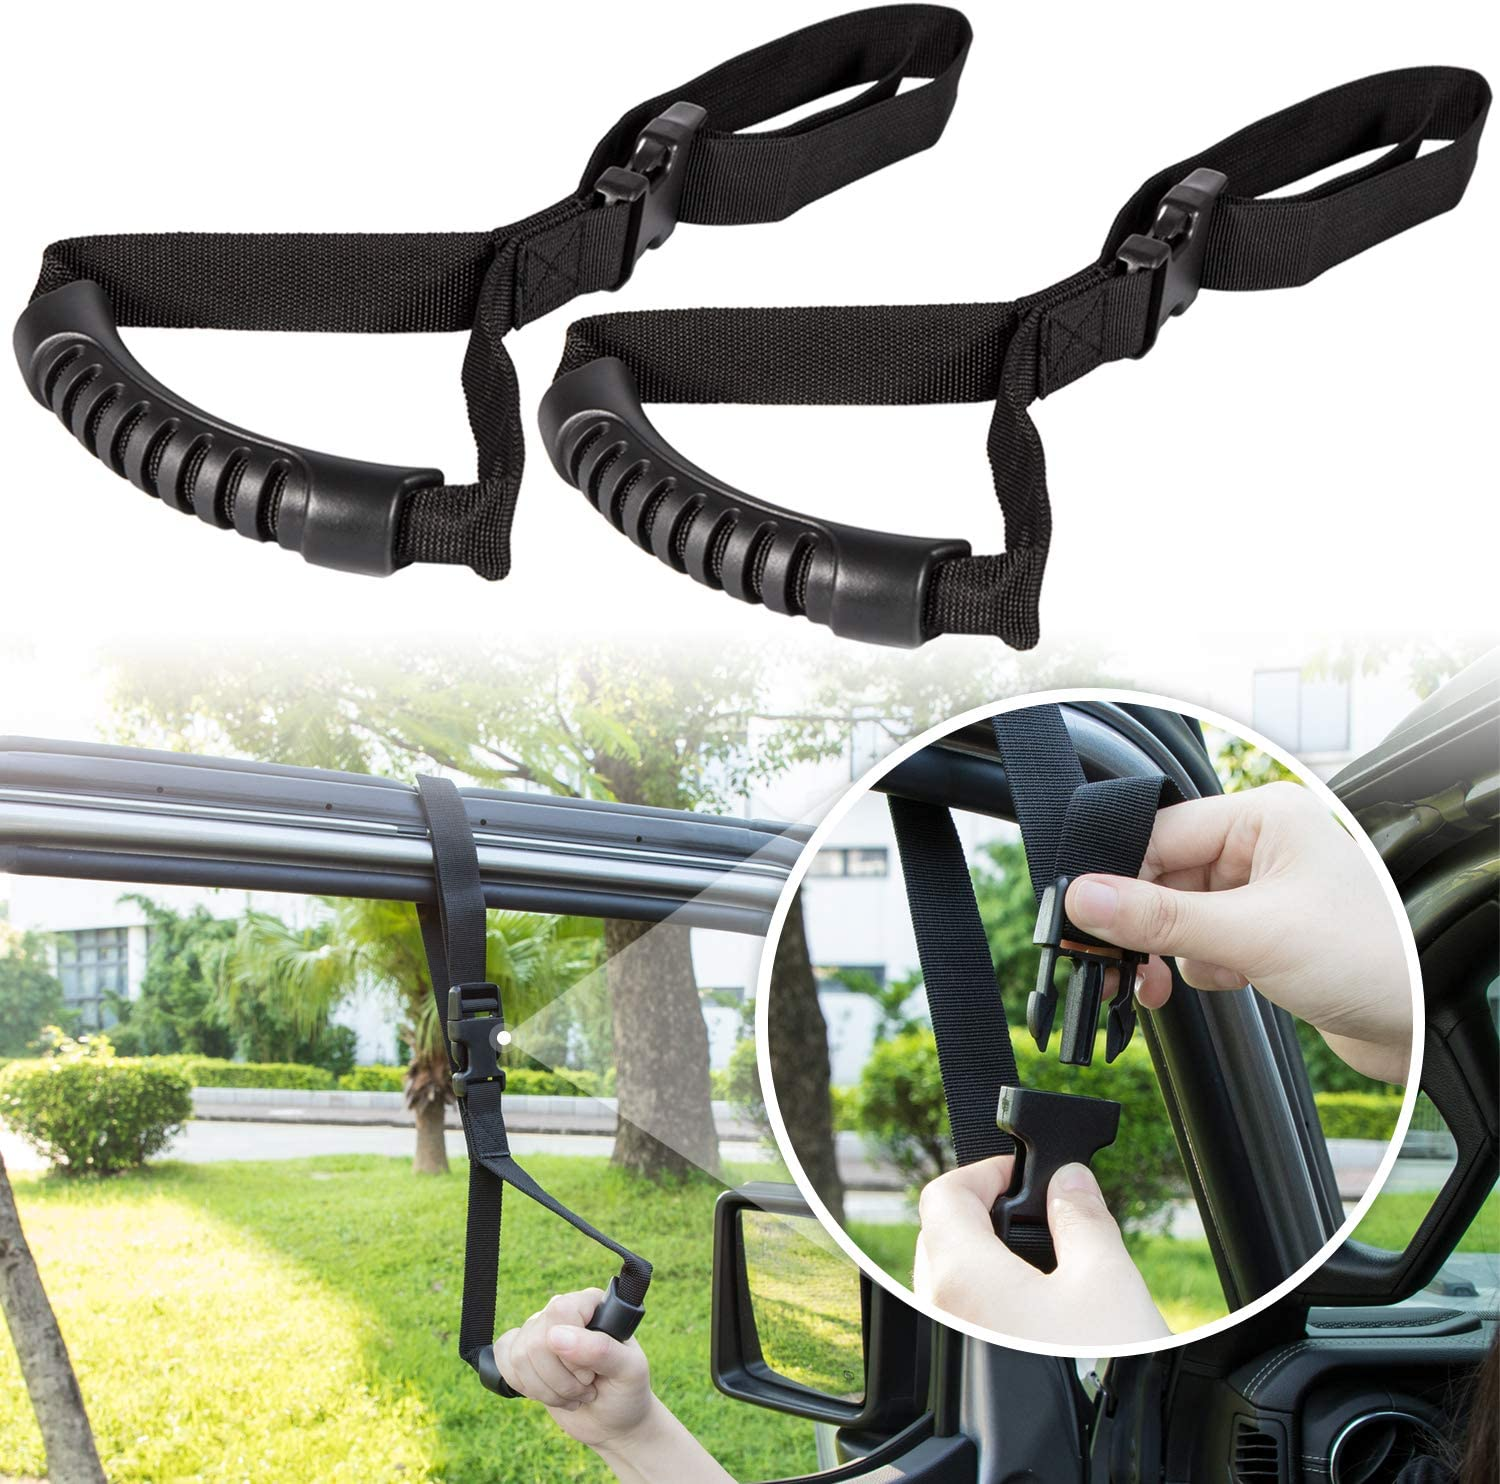 Quantity limited Auto Cane Car Grab famous Handle Standing Adjustable Aid Safety